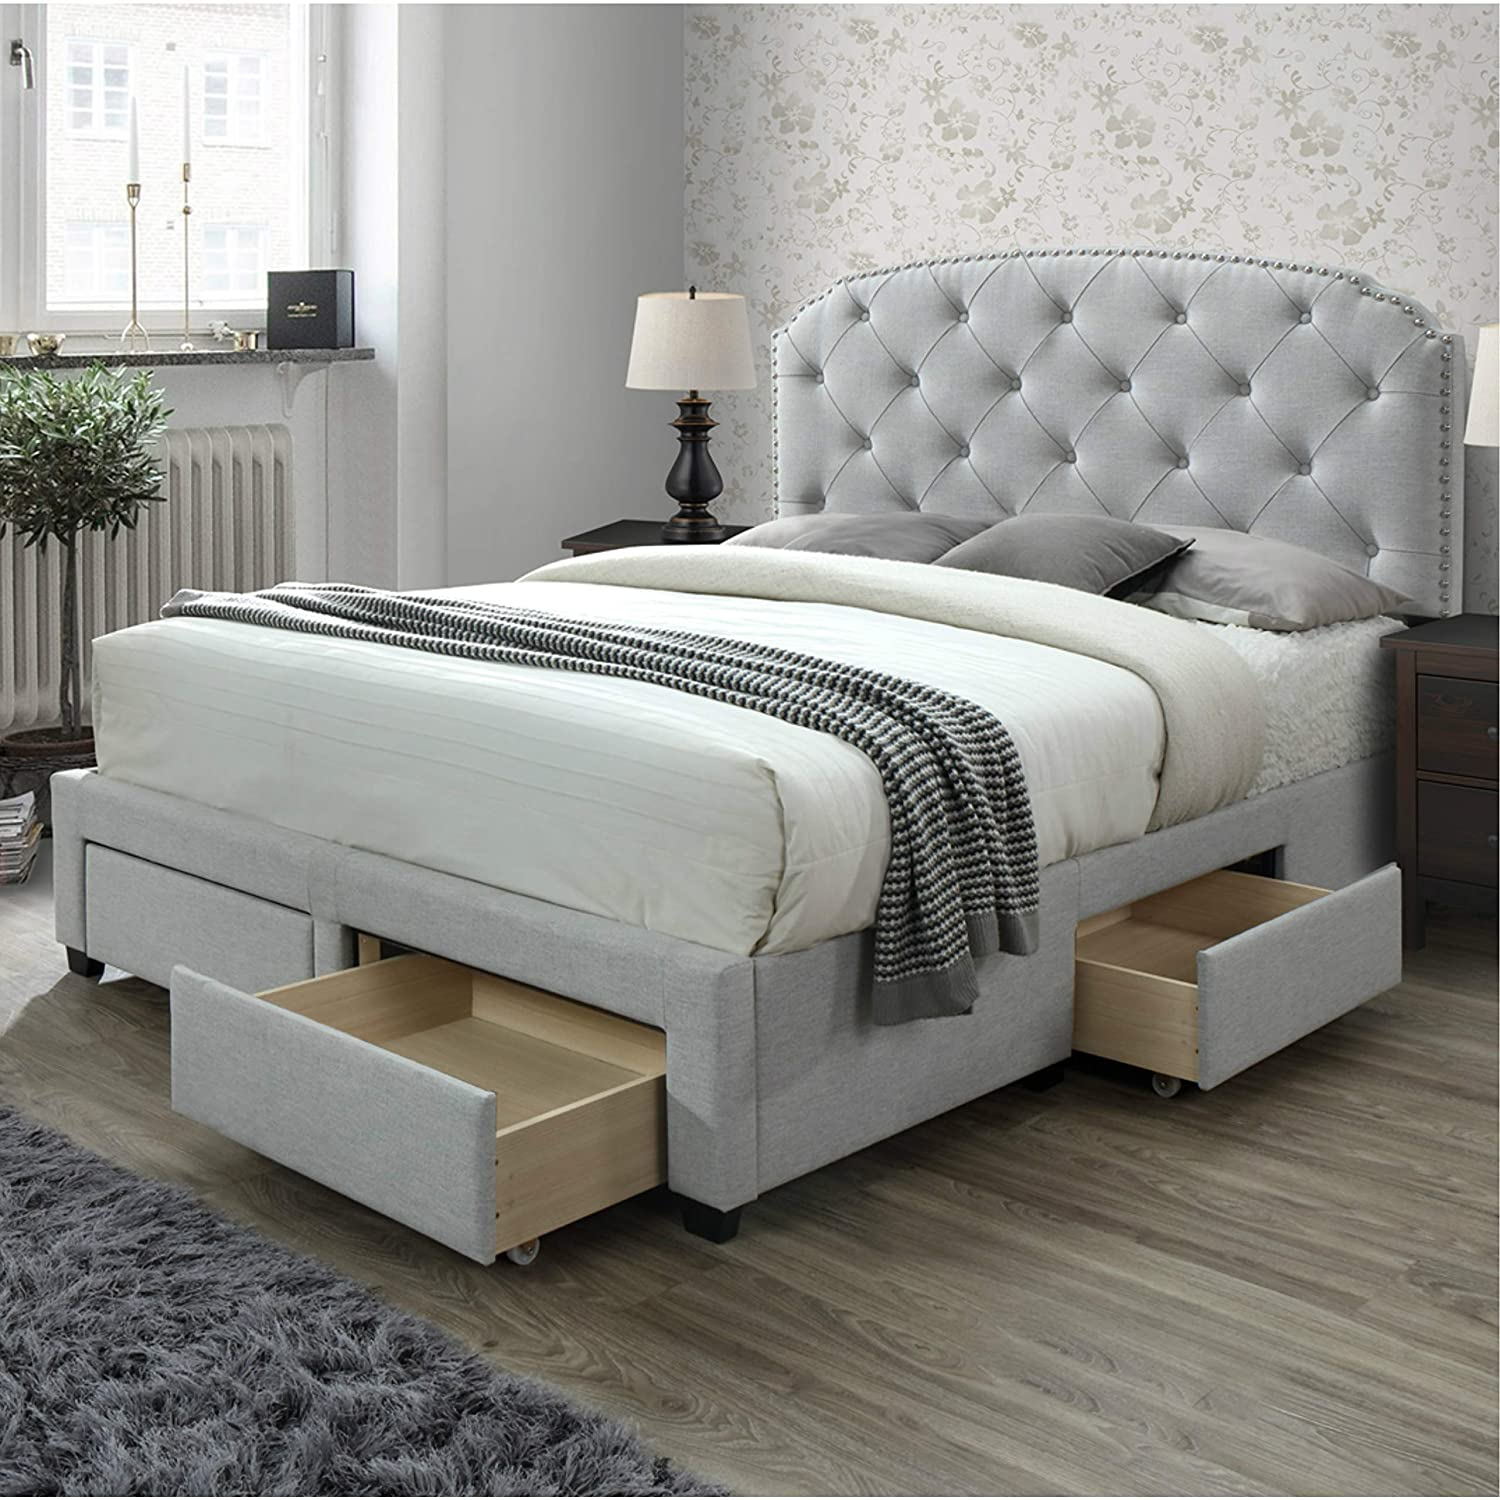 Top 7 best queen platform beds frame with storage reviews - Best platform beds with storage ...